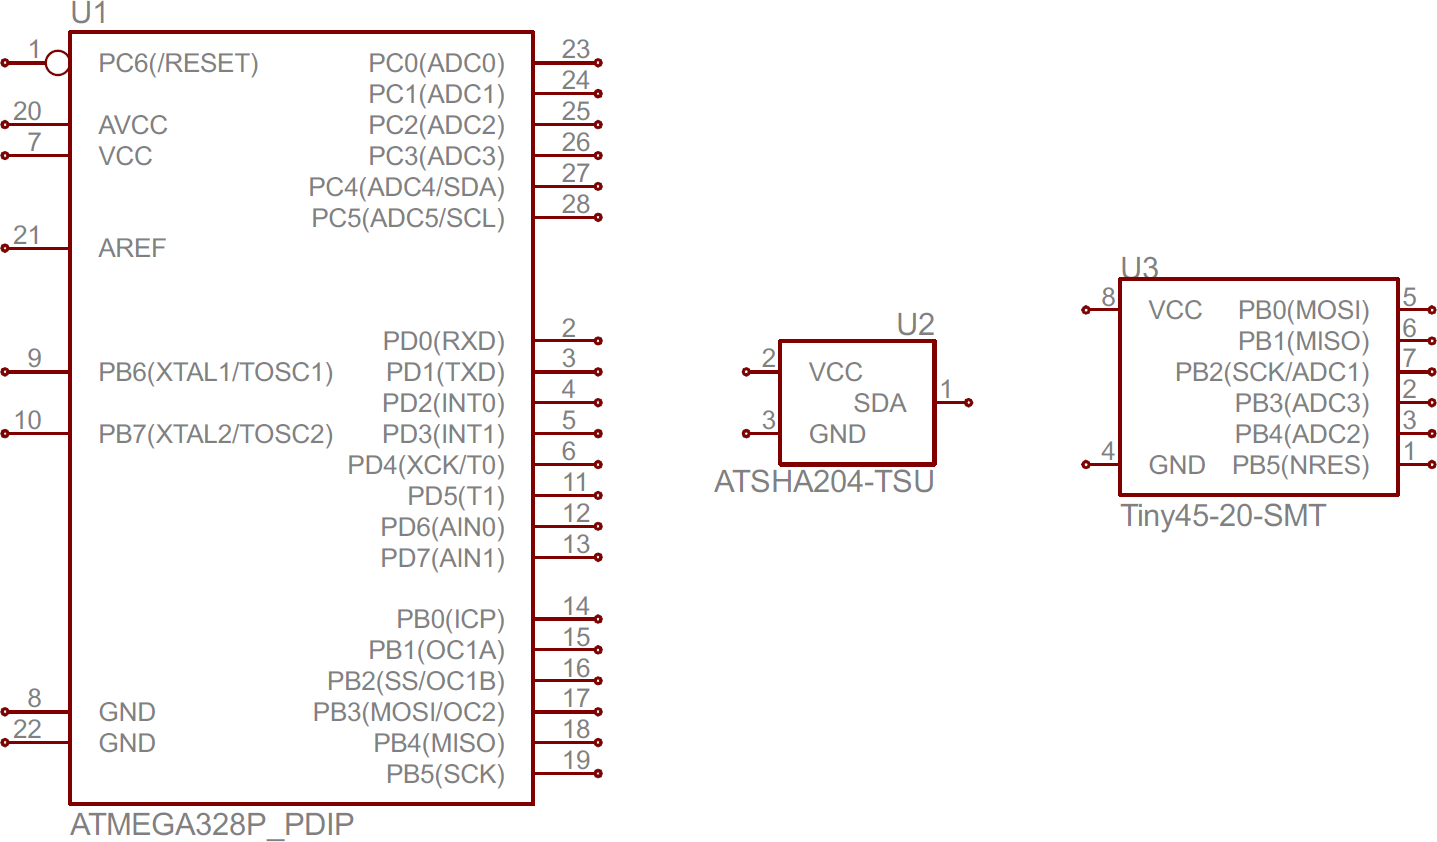 How To Read A Schematic Double Pole Switch Wiring Diagram Dpdt Get Free Image About Atmega328 Atsha204 And Attiny45 Ic Symbols